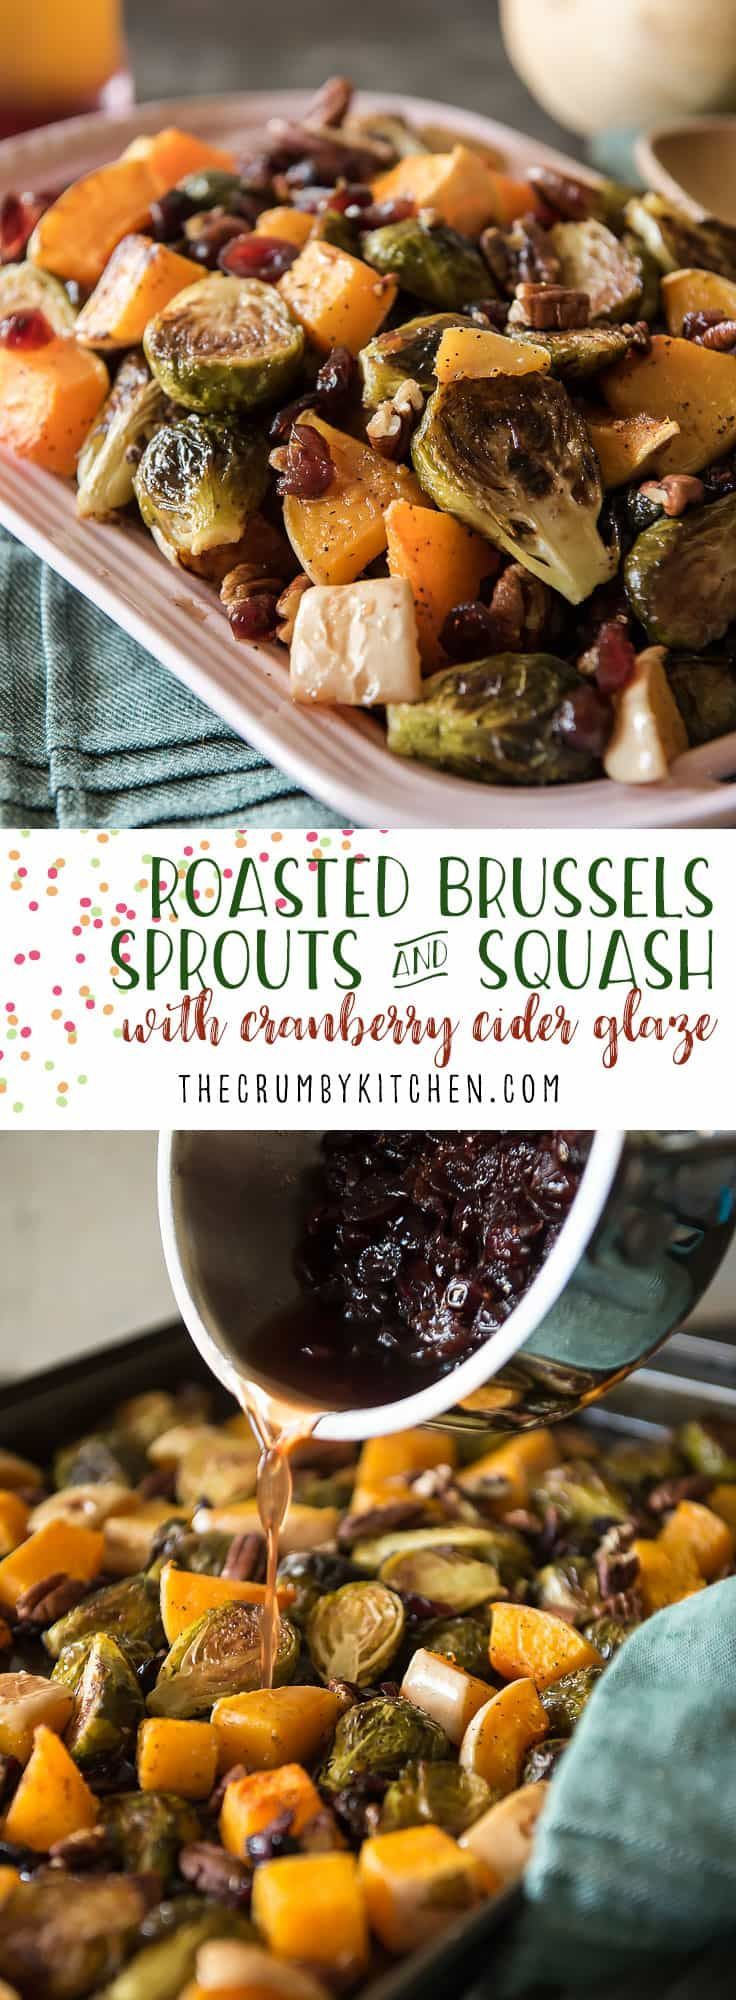 Caramelized veggies, roasted with pecans and tossed with a sweet and tangy glaze - these Roasted Brussels Sprouts & Squash With Cranberry Cider Glaze might be the perfect holiday side dish! #thanksgiving #recipe #Brusselssprouts #recipes #butternutsquash #squash #cranberry #pecans #roasted #applecider #ciderglaze #holiday #christmas #healthy #vegetable #sidedish